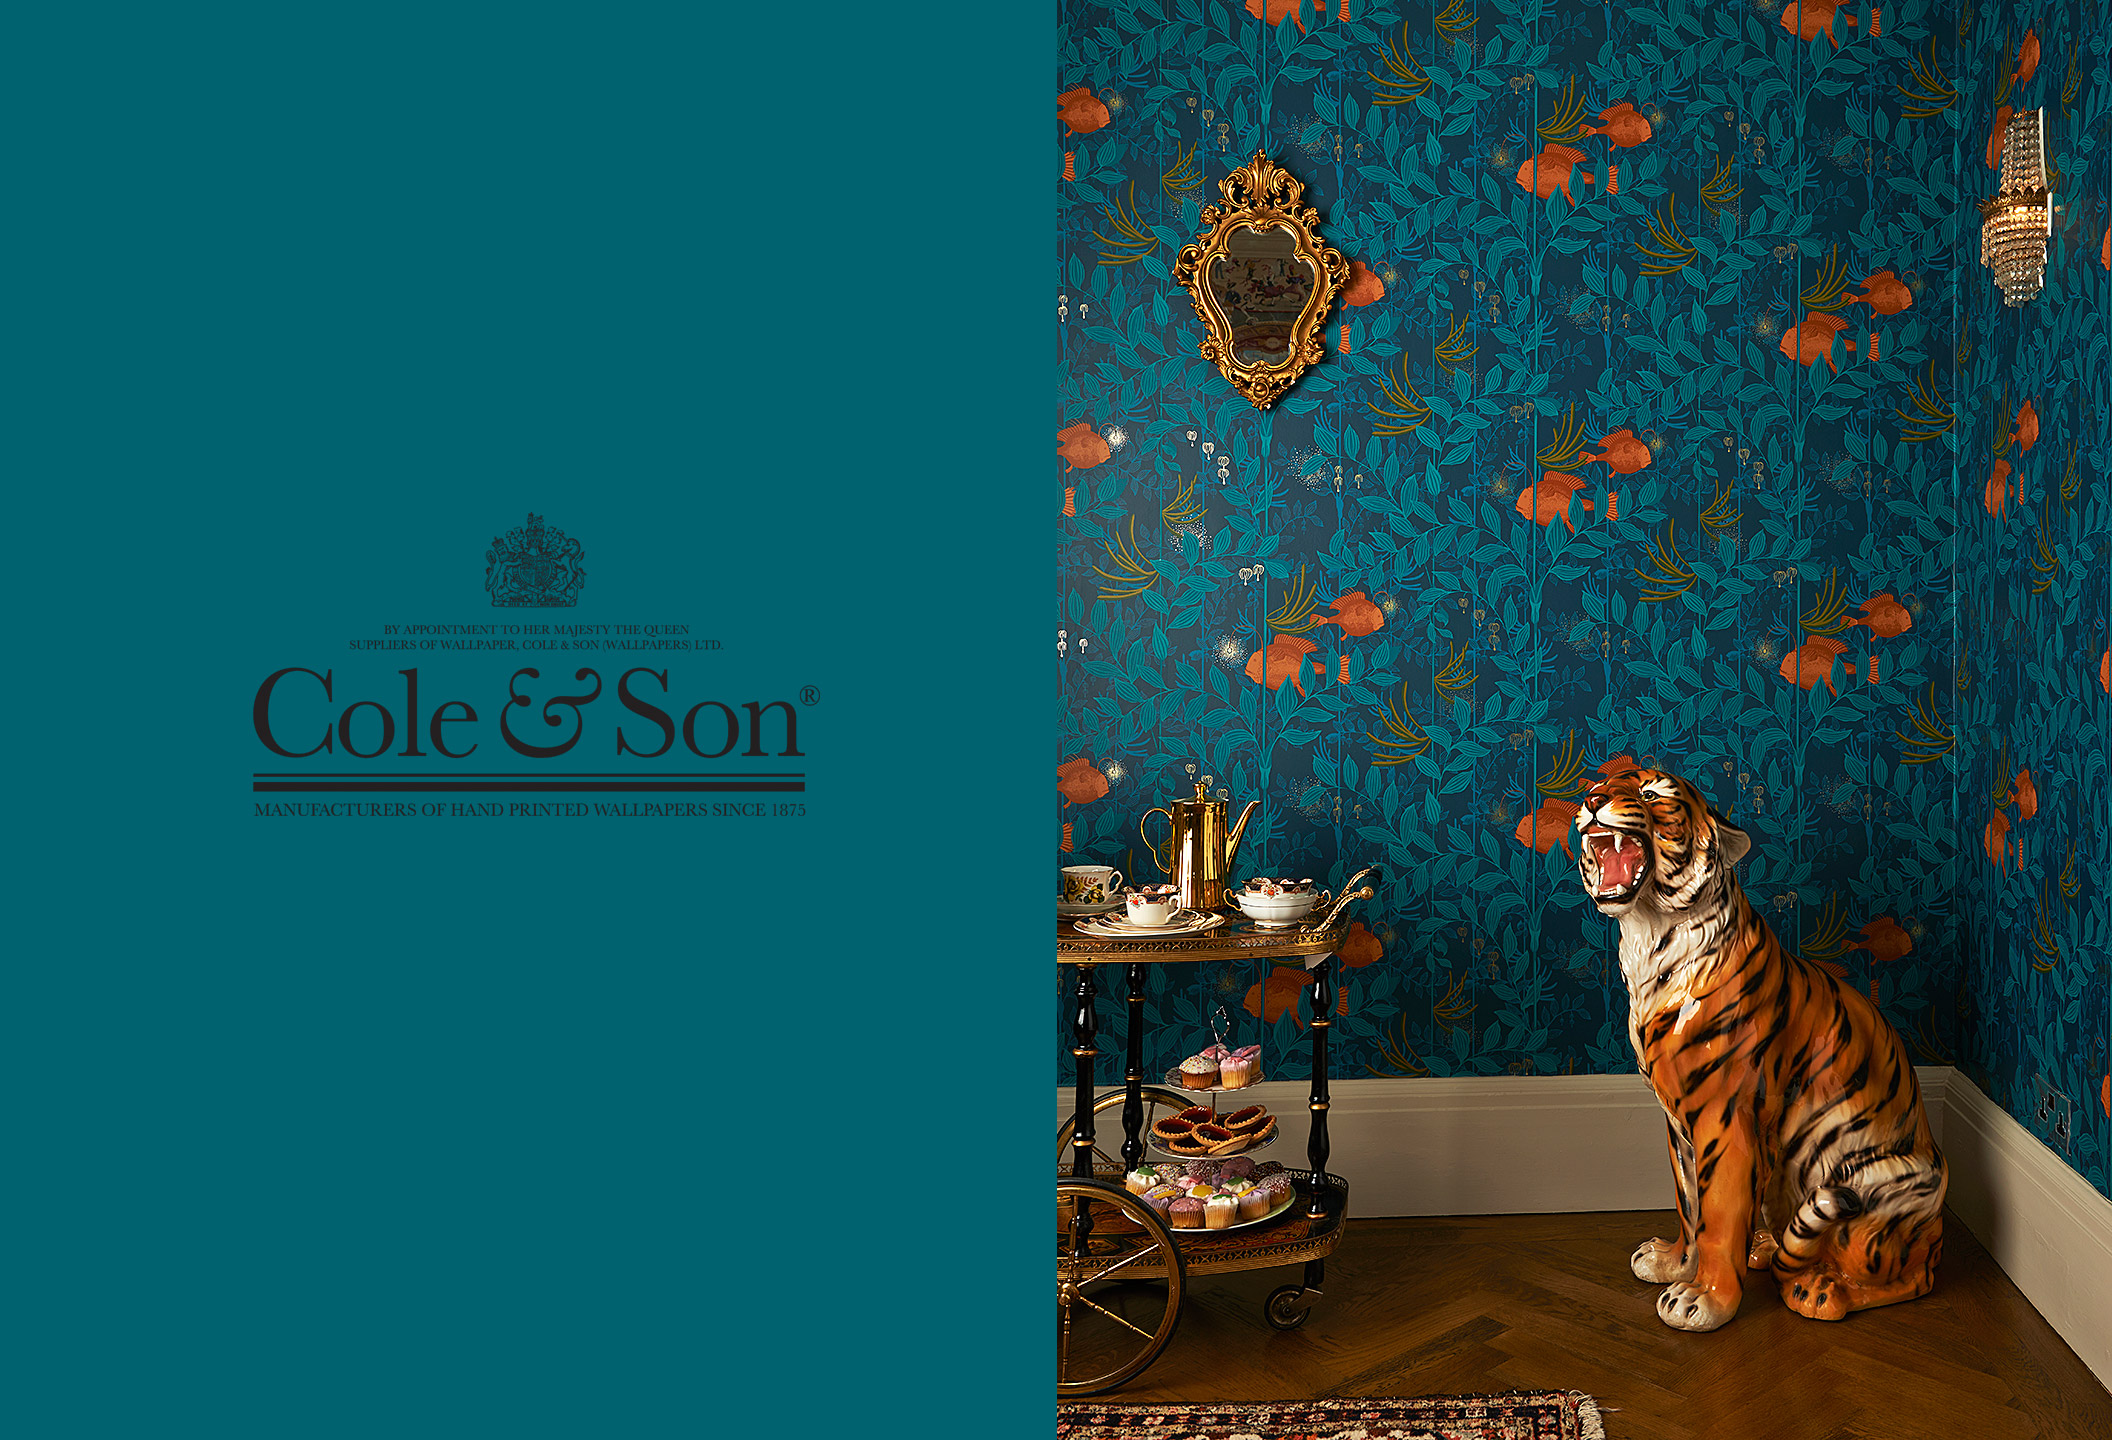 cole and son wallpaperwhite tiger wallpaper driverlayer search engine. Black Bedroom Furniture Sets. Home Design Ideas